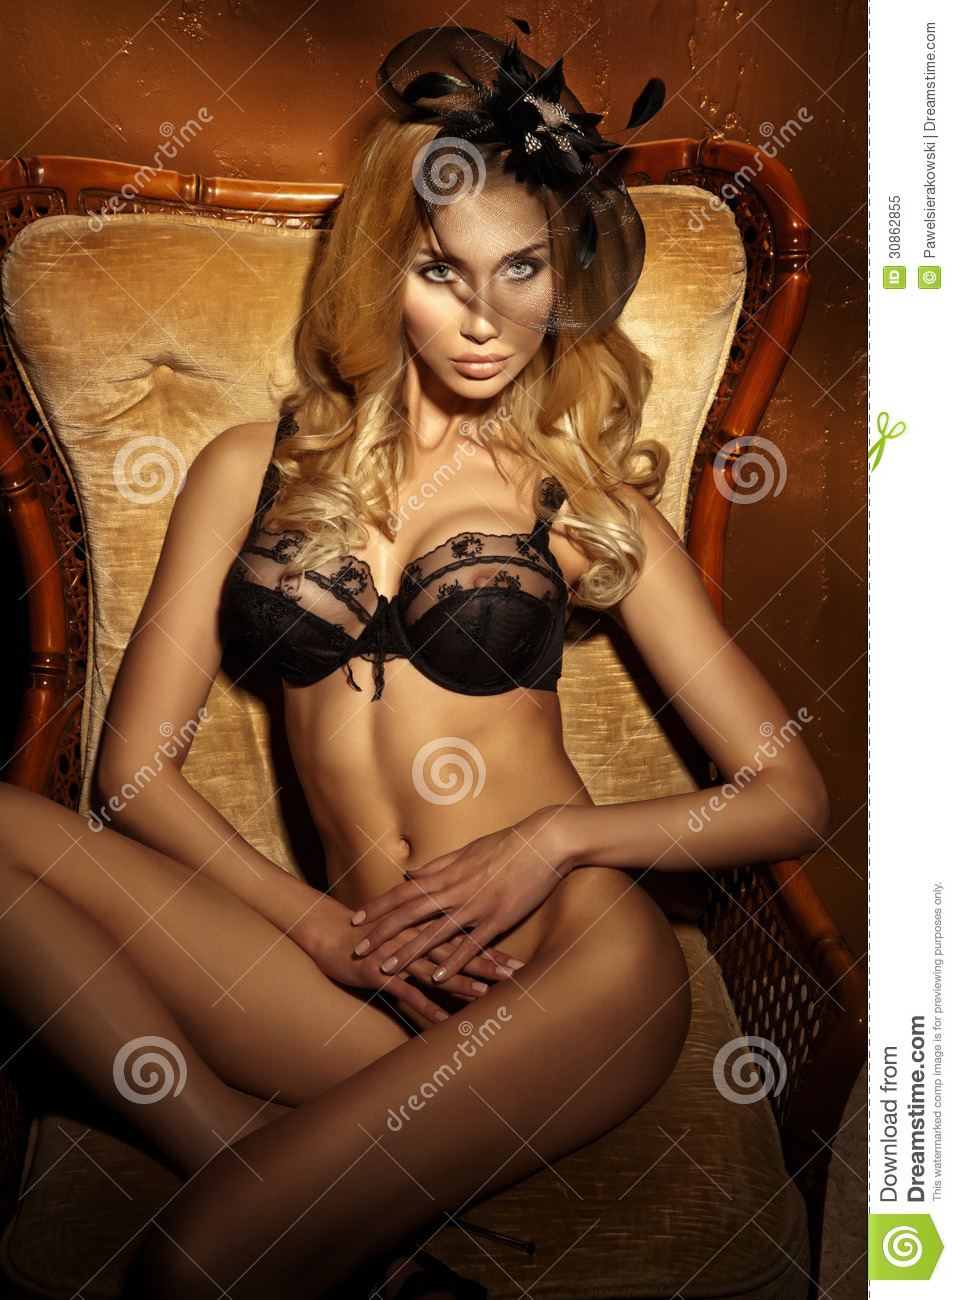 Attractive Naked Lady Sitting On Chair Looking At Camera -8013